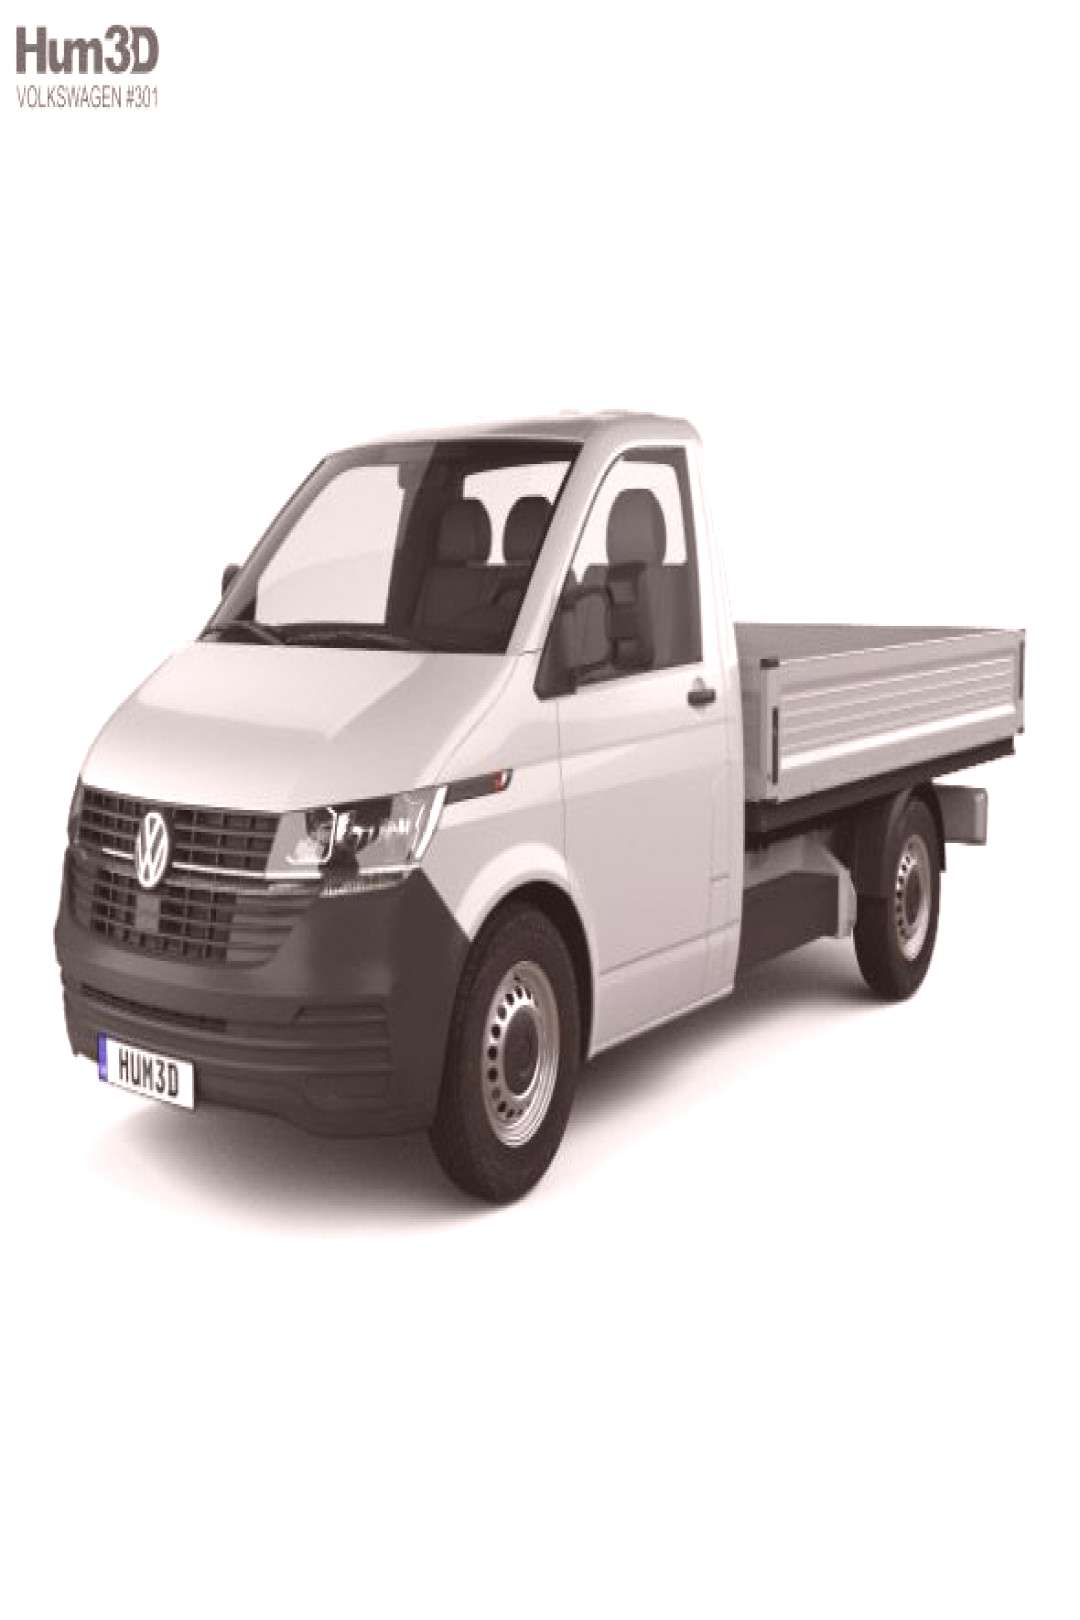 Volkswagen Transporter Single Cab Pickup L2 2019. Fully editable and reusable 3D model of a car.